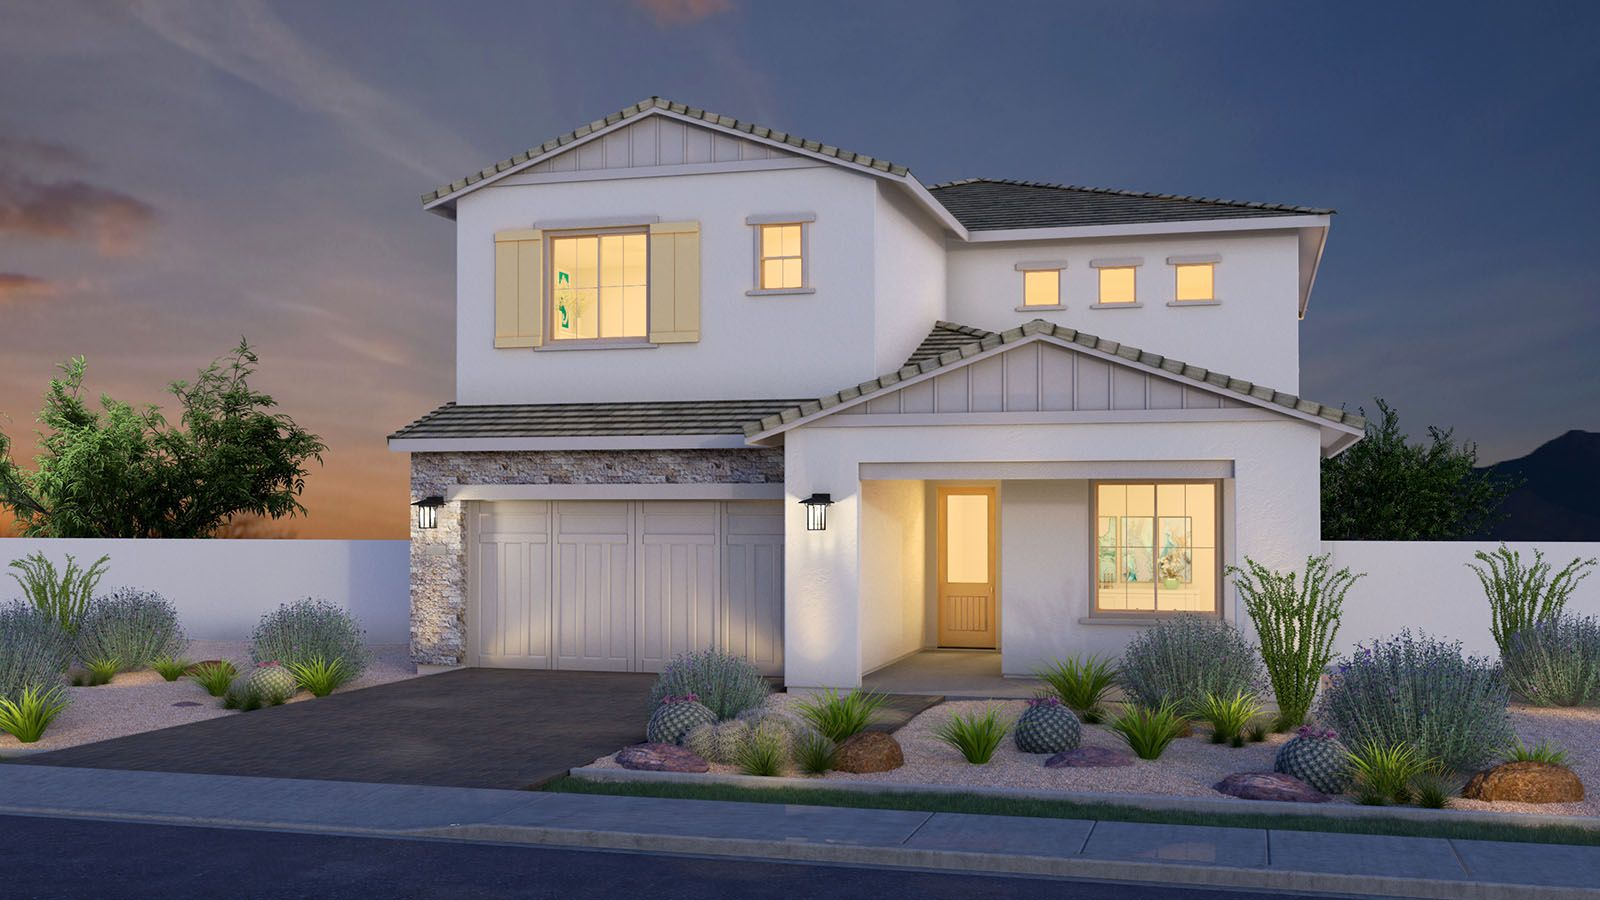 MH-residence-Canopy-North-404-B-DUSK-L:Modern Ranch Elevation